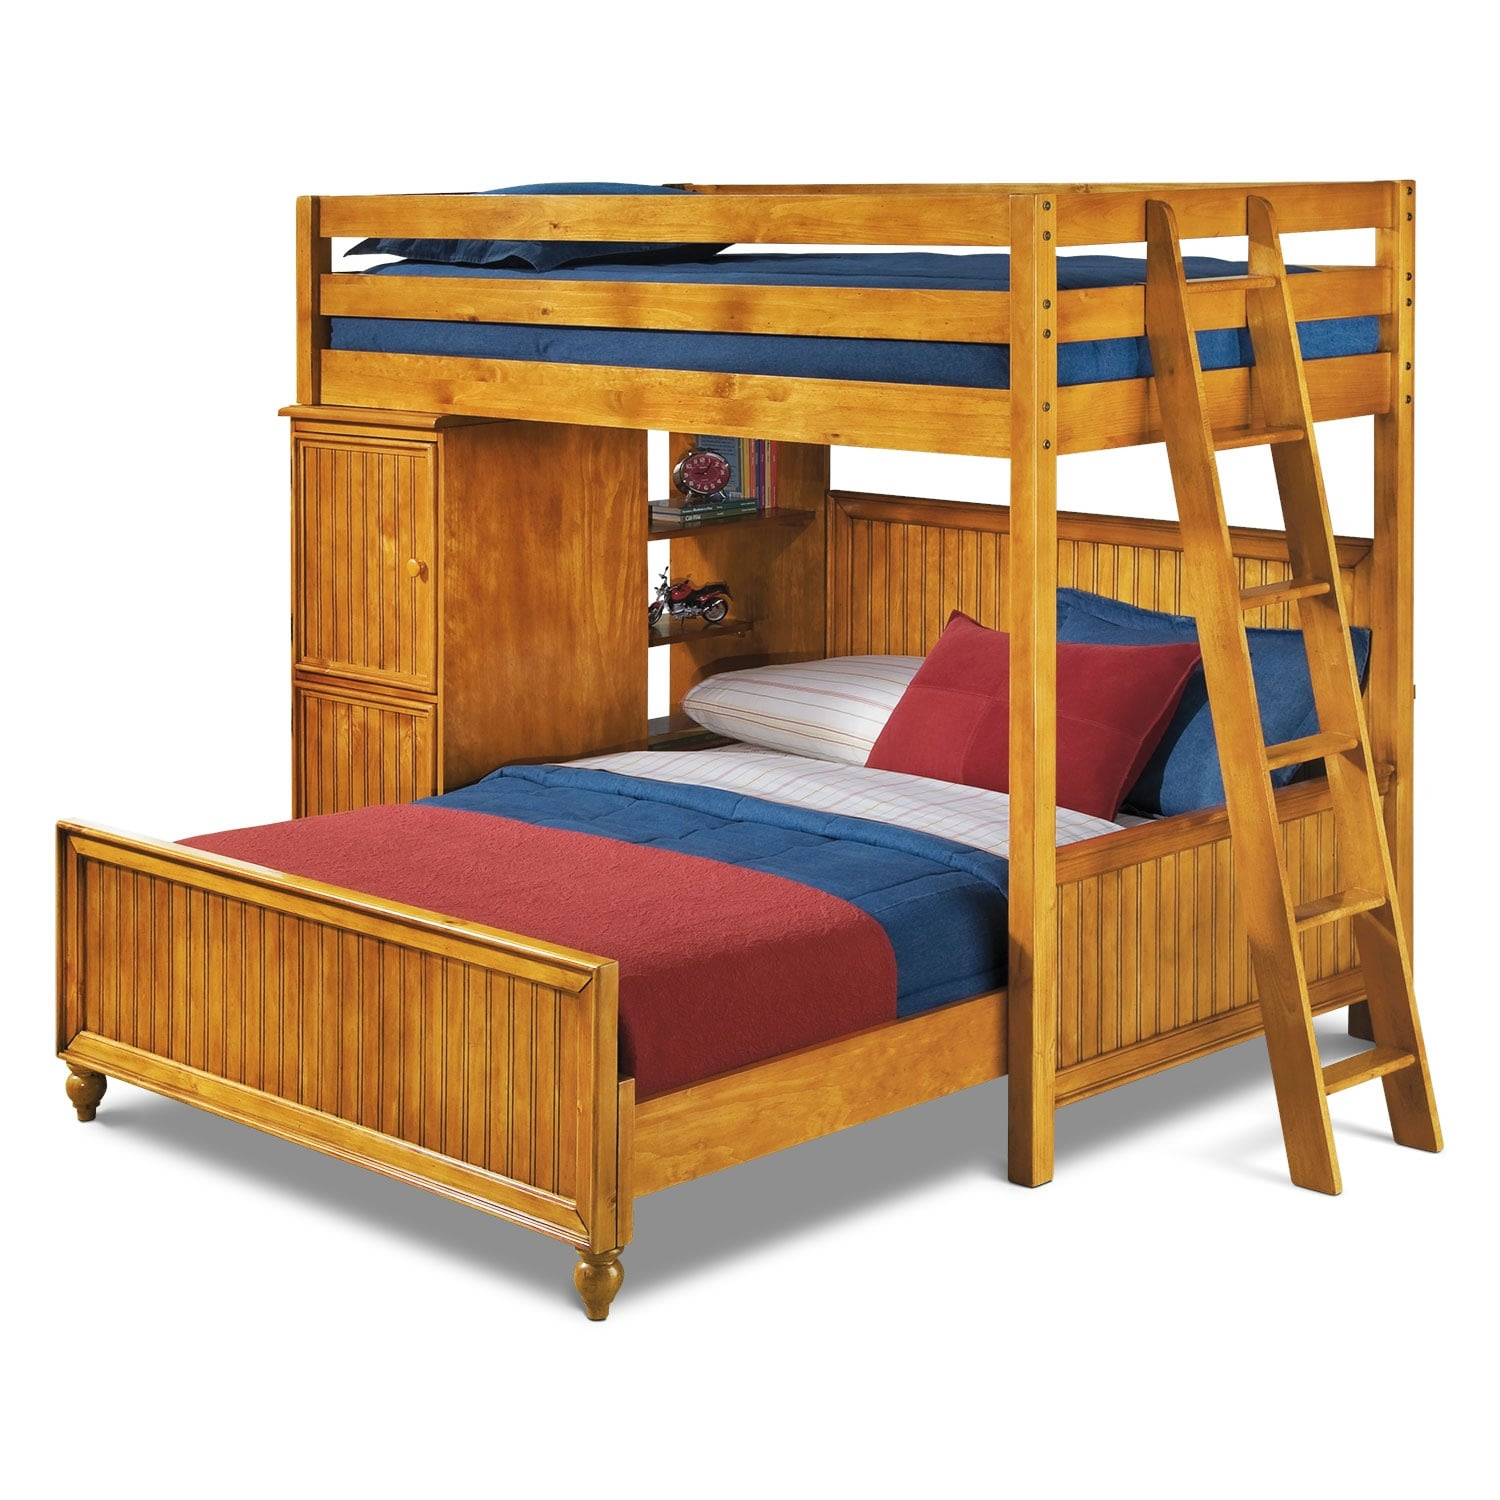 Colorworks Loft Bed with Full Bed - Honey Pine | Value ...